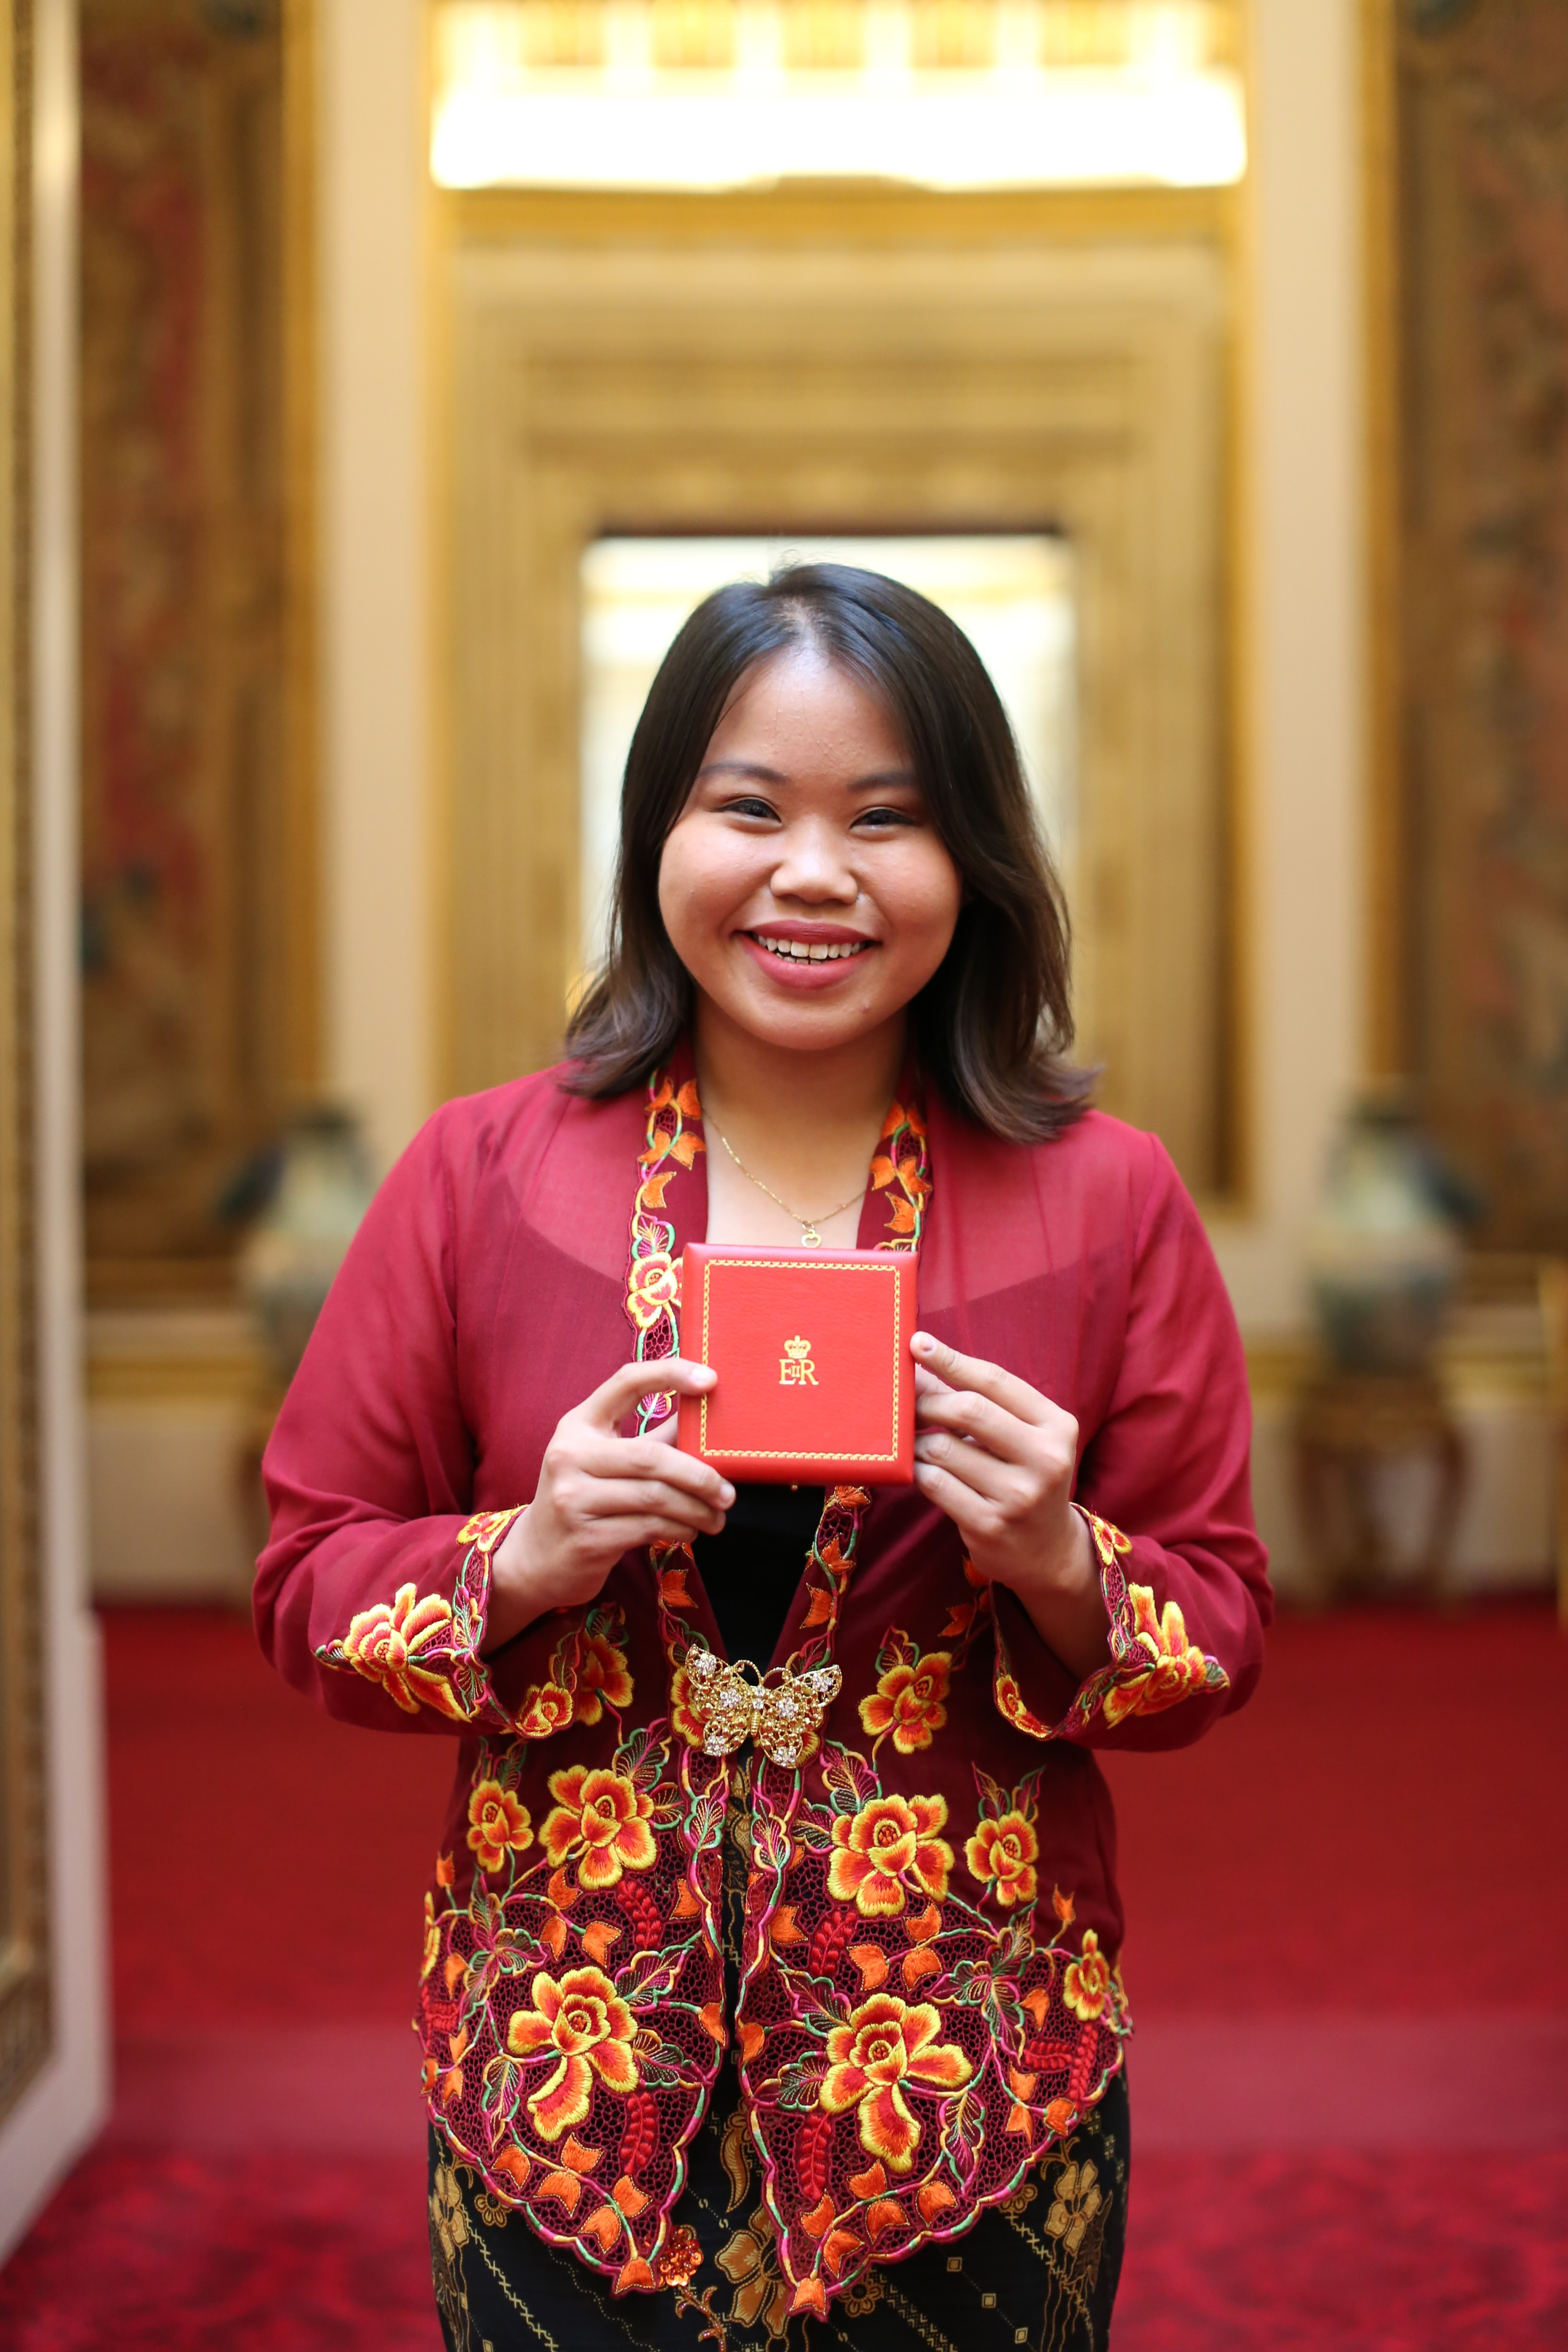 Heidy Quah 2017 Queen's Young Leader from Malaysia